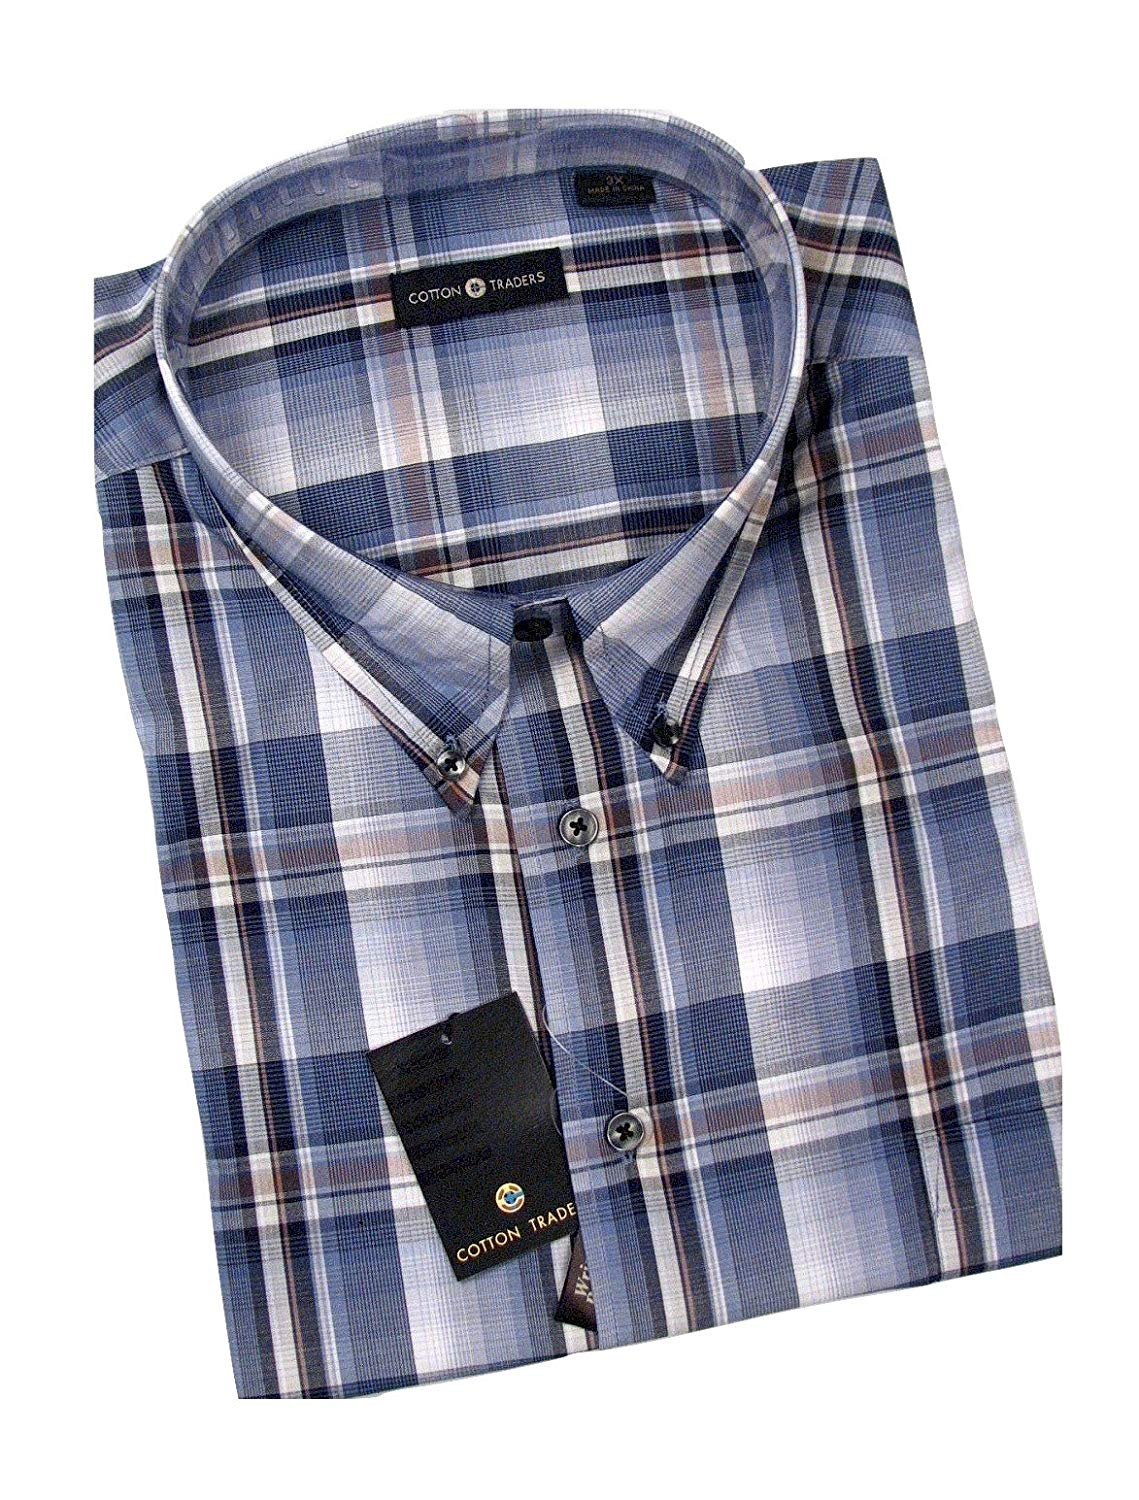 da7d171620c Get Quotations · Cotton Traders Big and Tall Mens Short Sleeve Easy Care Cotton  Shirts